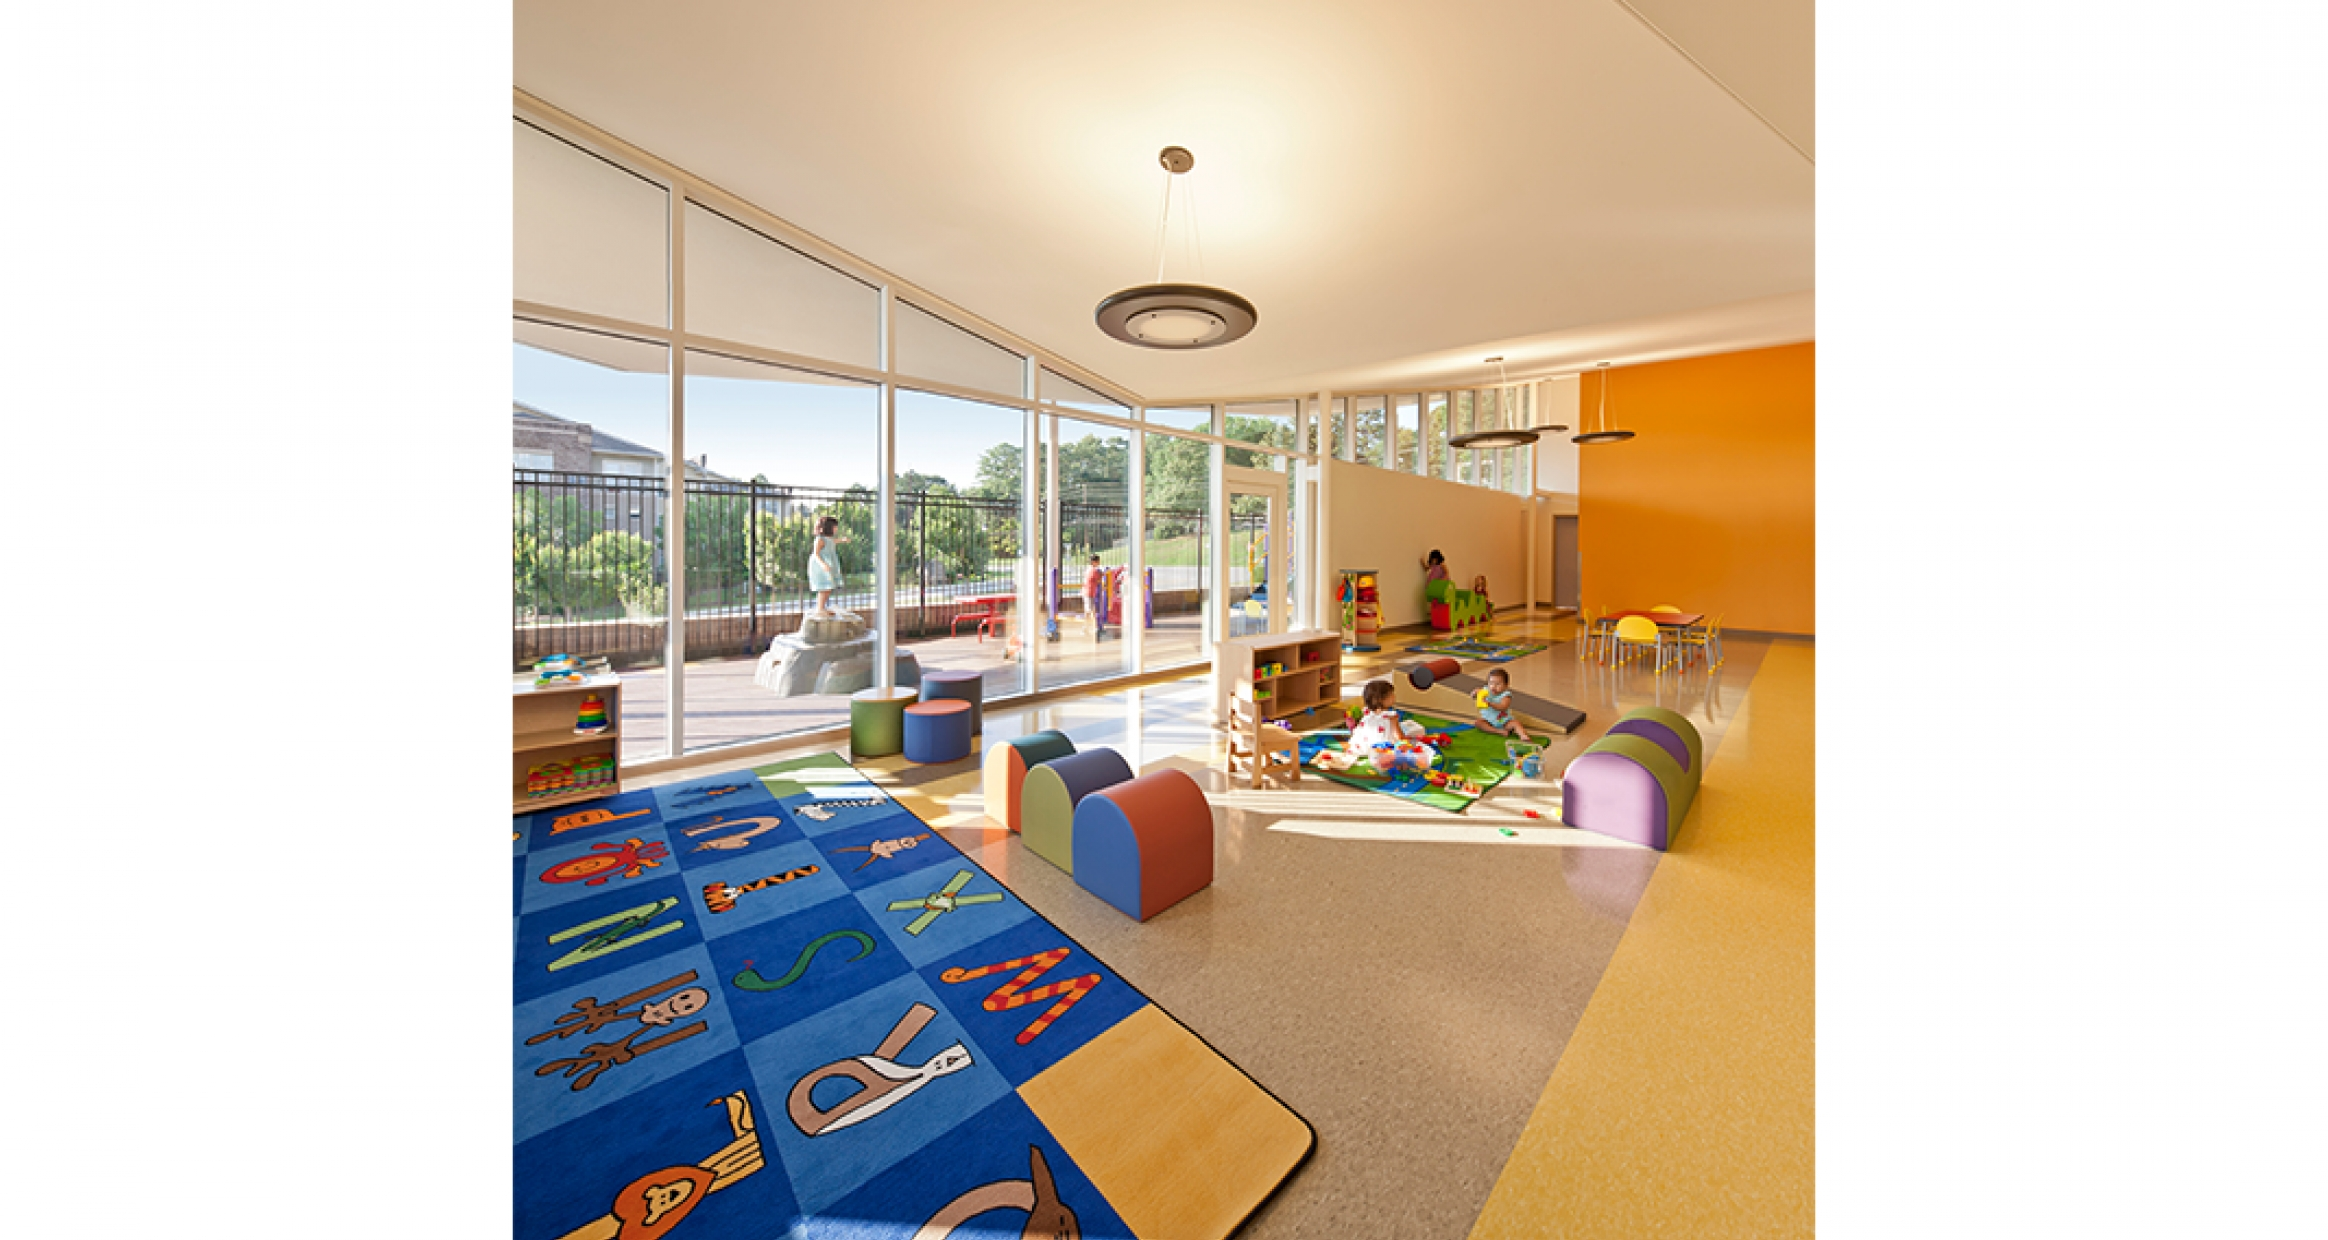 Interior Day Care